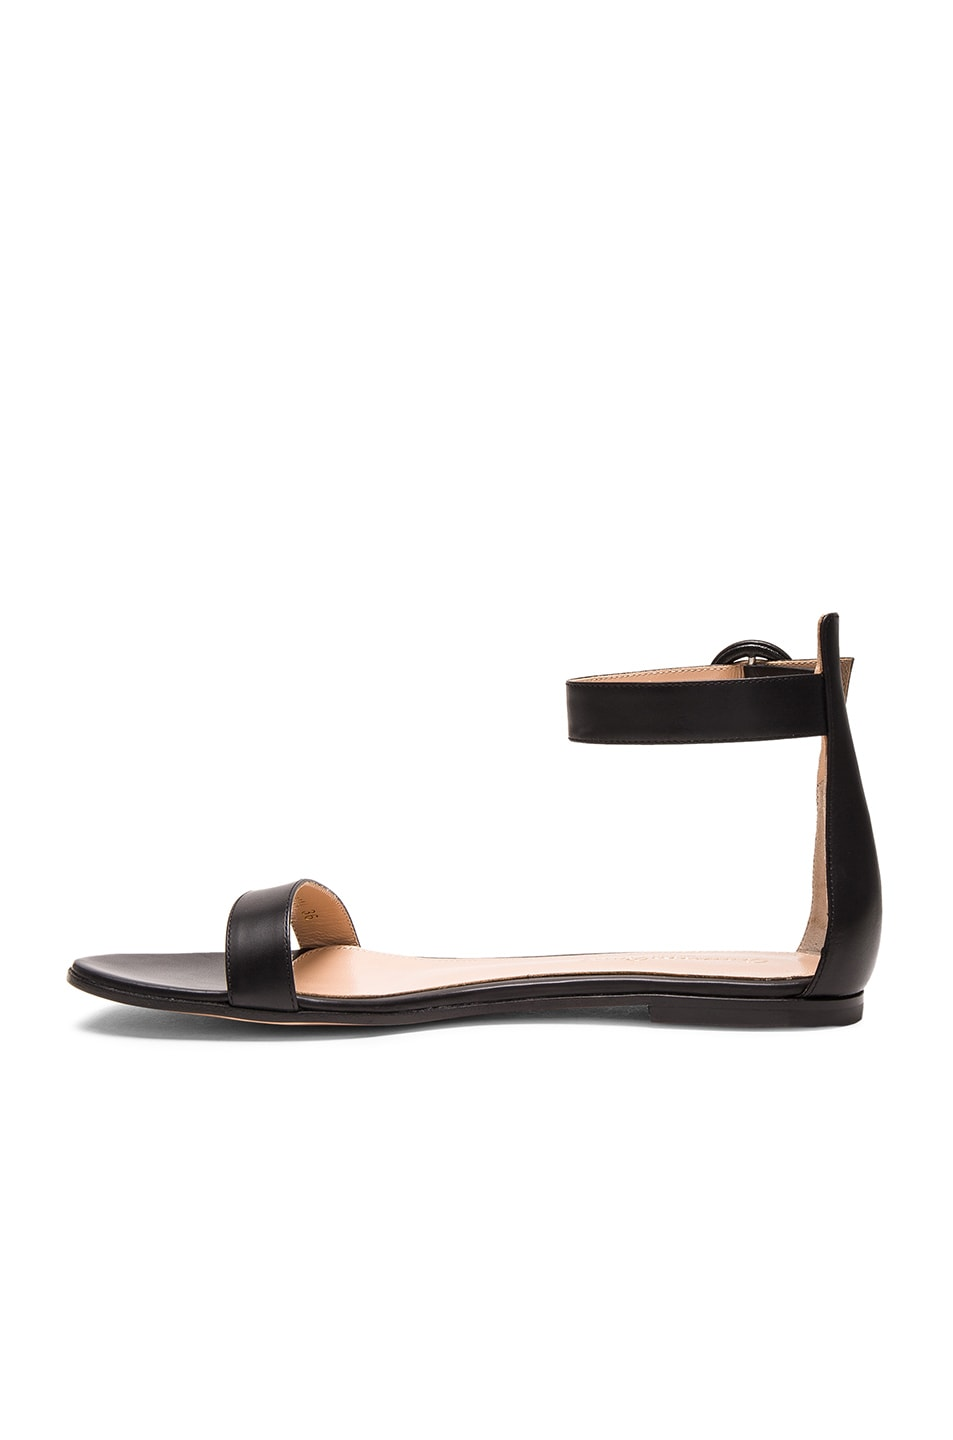 Image 5 of Gianvito Rossi Leather Ankle Strap Sandals in Black